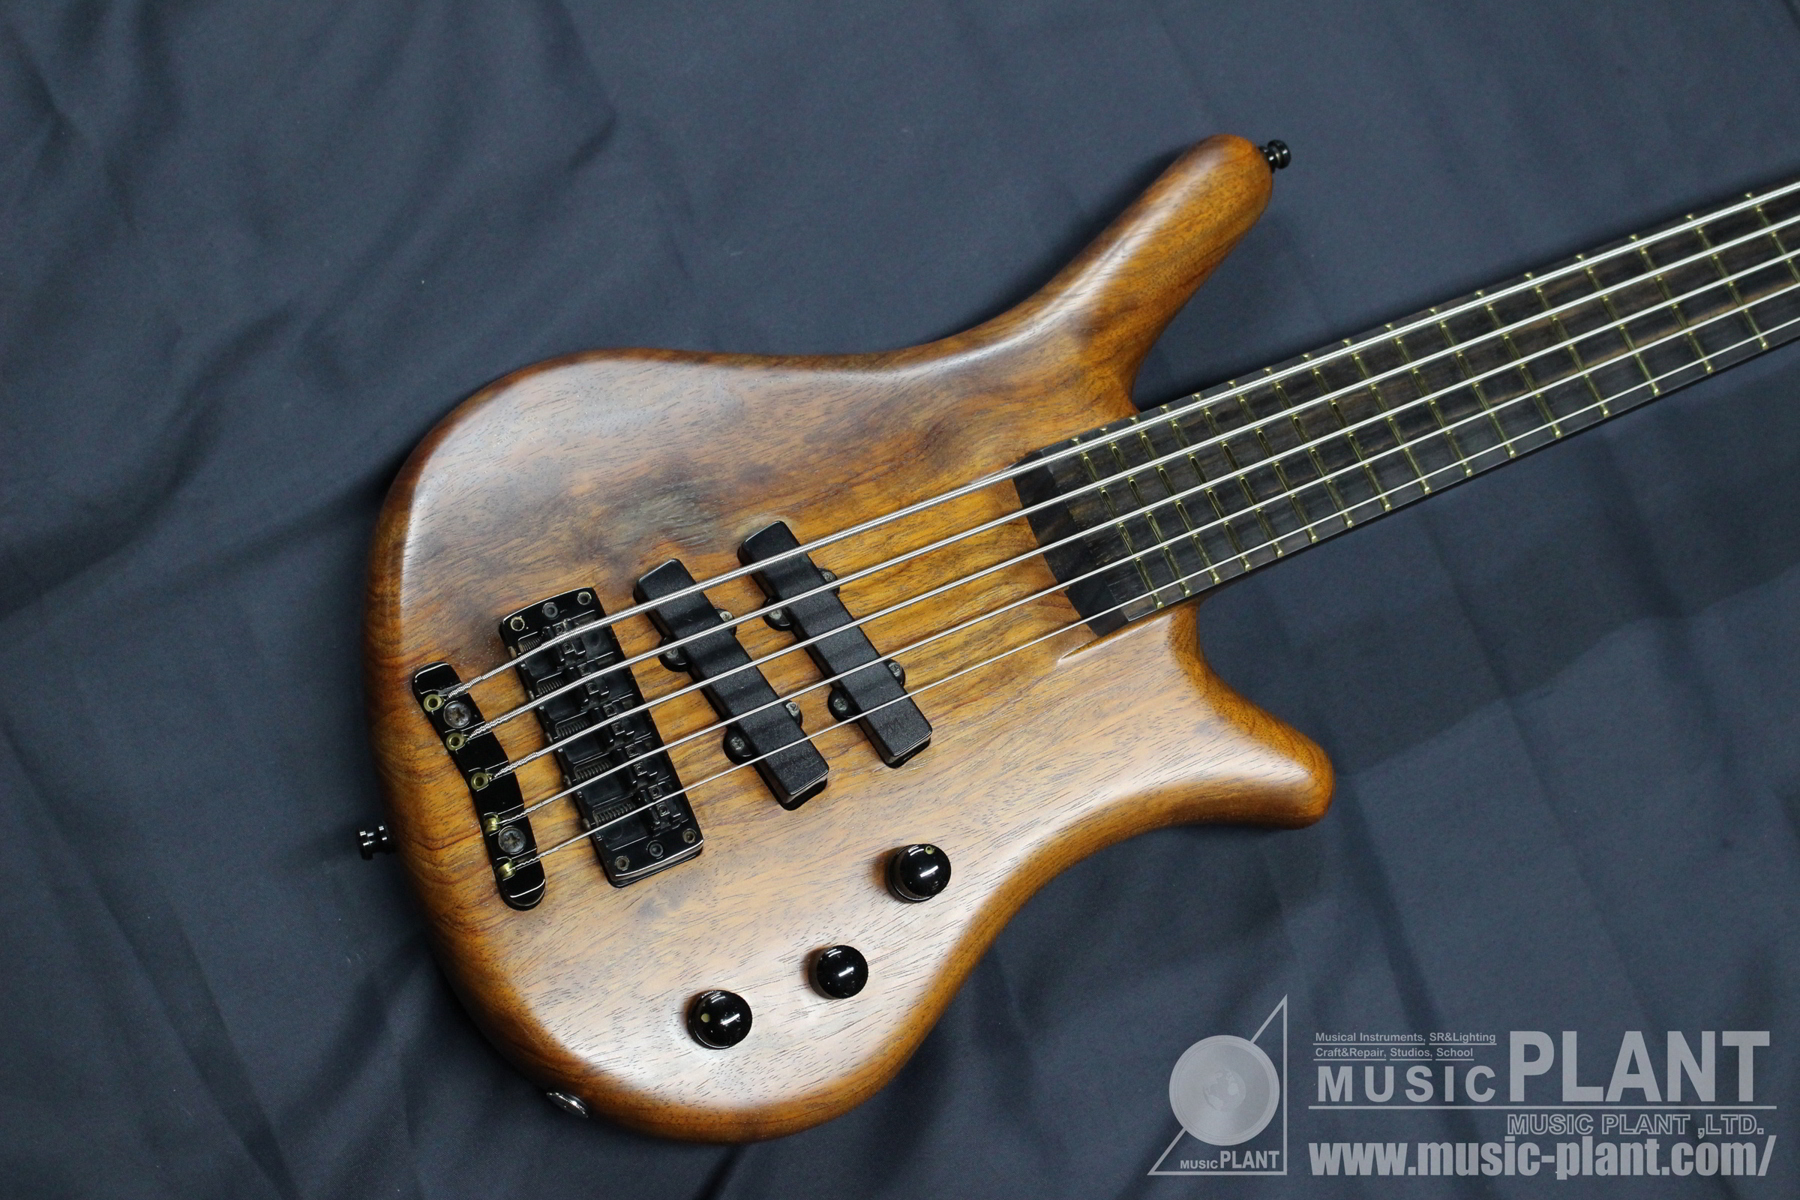 Thumb Bass 5st Through Neck Natural Oil Finish追加画像